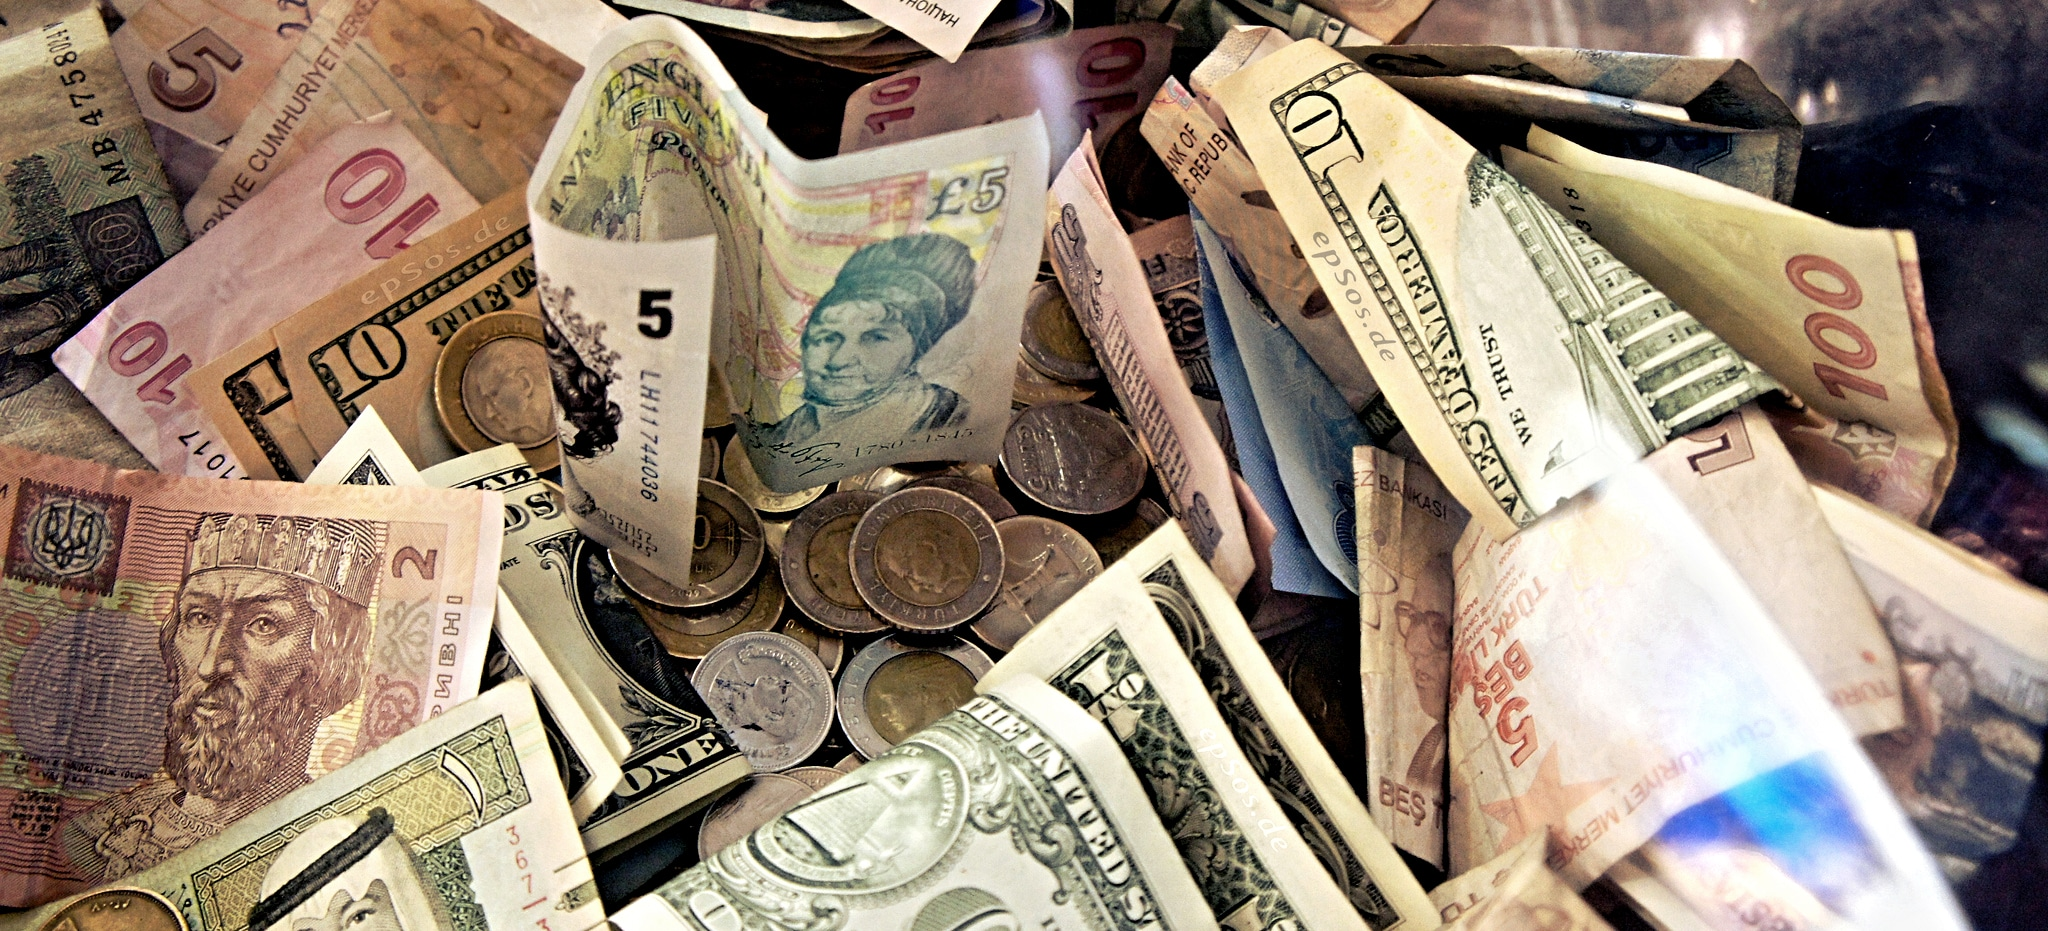 UK Payment Providers Stock Down Nearly 30% over £5m Potential Loss